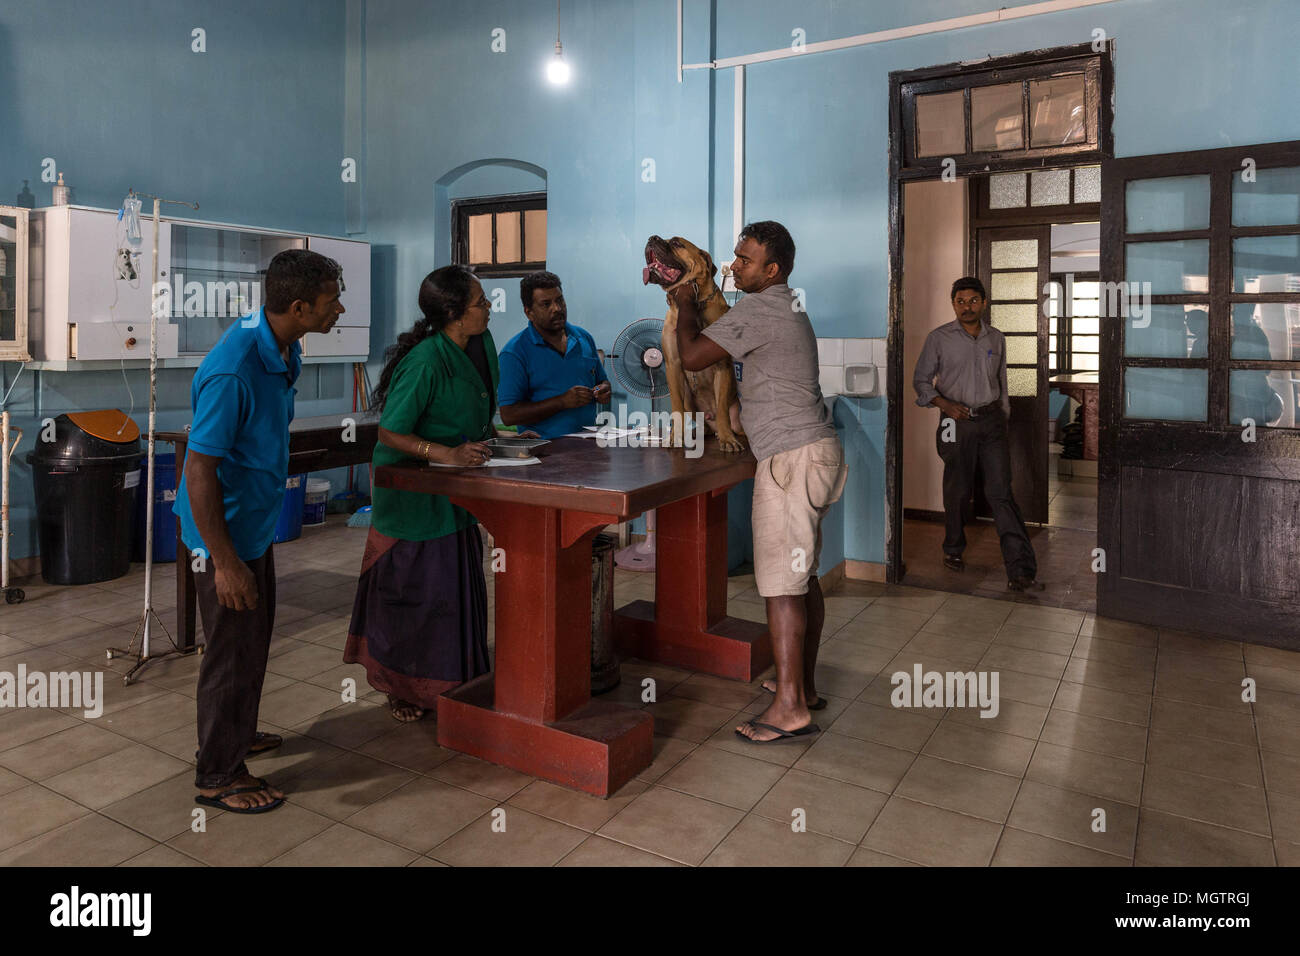 Kandy, Sri Lanka. 18th Feb, 2018. DR. MANOHARI examines one of her four-legged patients at the Government Veterinary Hospital clinic in the Peradeniya region of Kandy, Sri Lanka, on Sunday, February 18, 2018.MANOHARI, a Hindu, married in 1991. She started her veterinary practice in 1992 while she was pregnant. She started working at this hospital in 1993.She and her husband, a Muslim, have two sons and a daughter. Her sons are currently studying for higher degrees in the United States and Nepal.MANOHARI looks after her 86-year-old mother who is experiencing dementia. (Credit Image: © - Stock Image